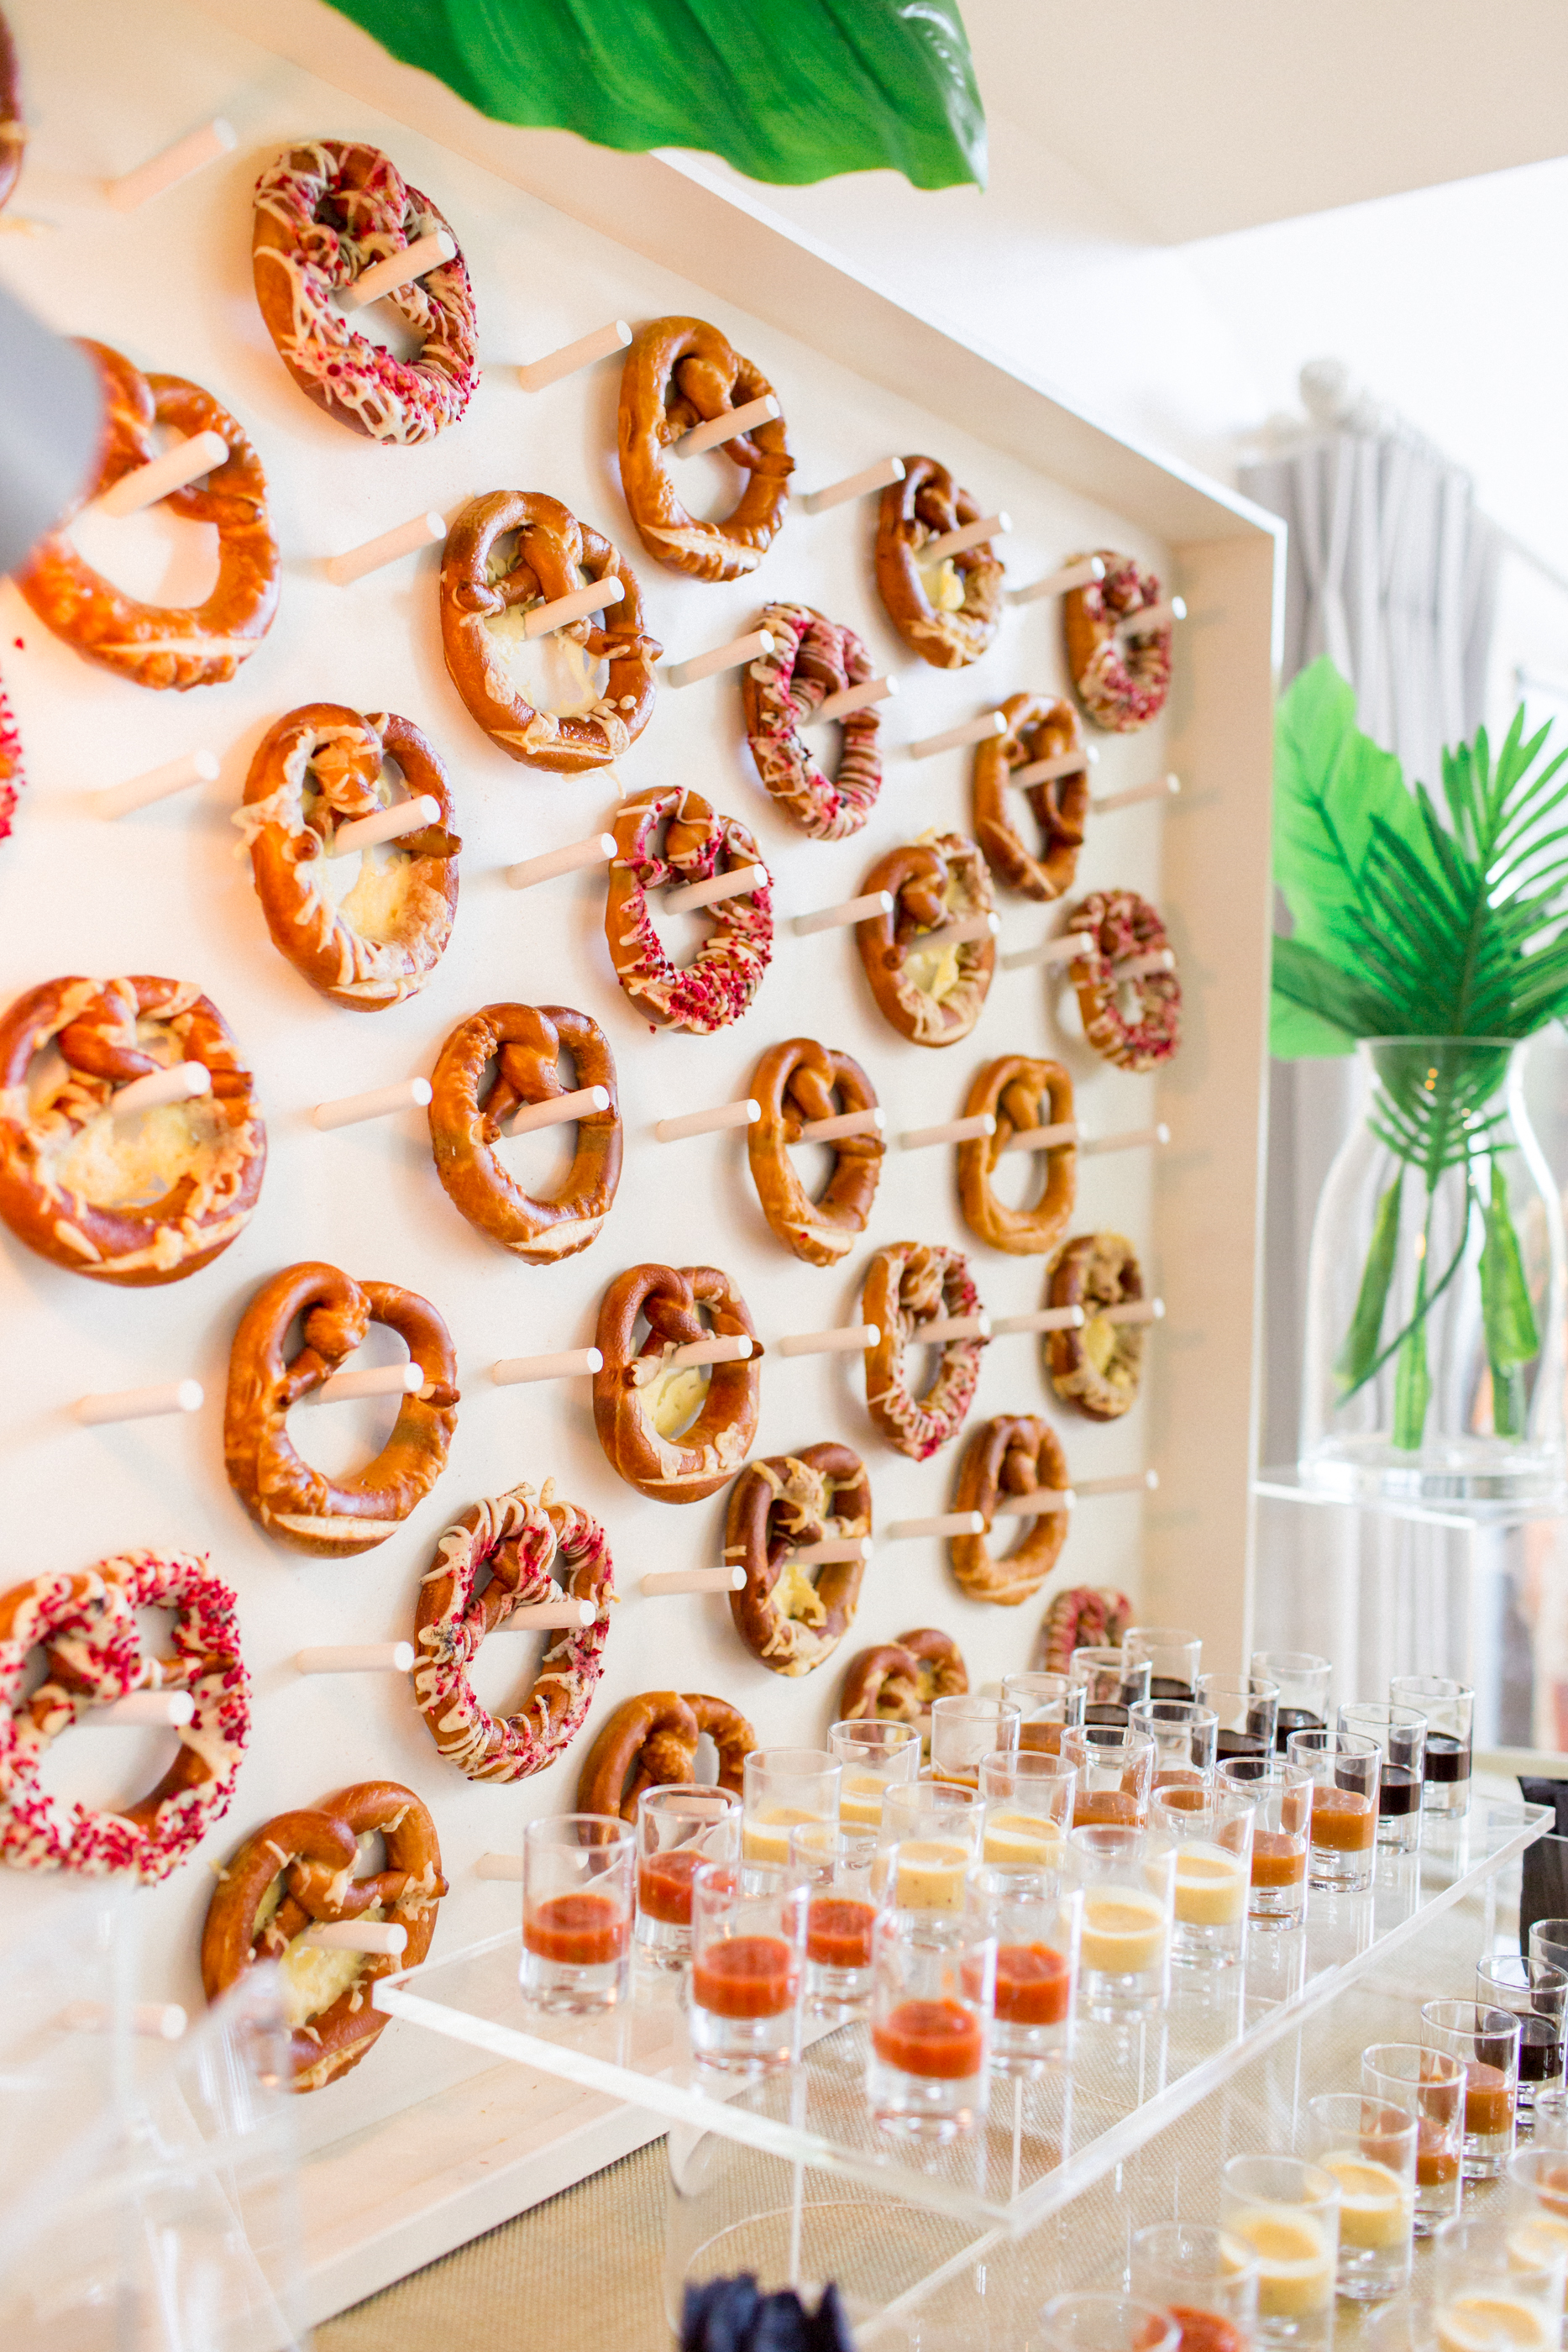 pretzel food wall with condiments